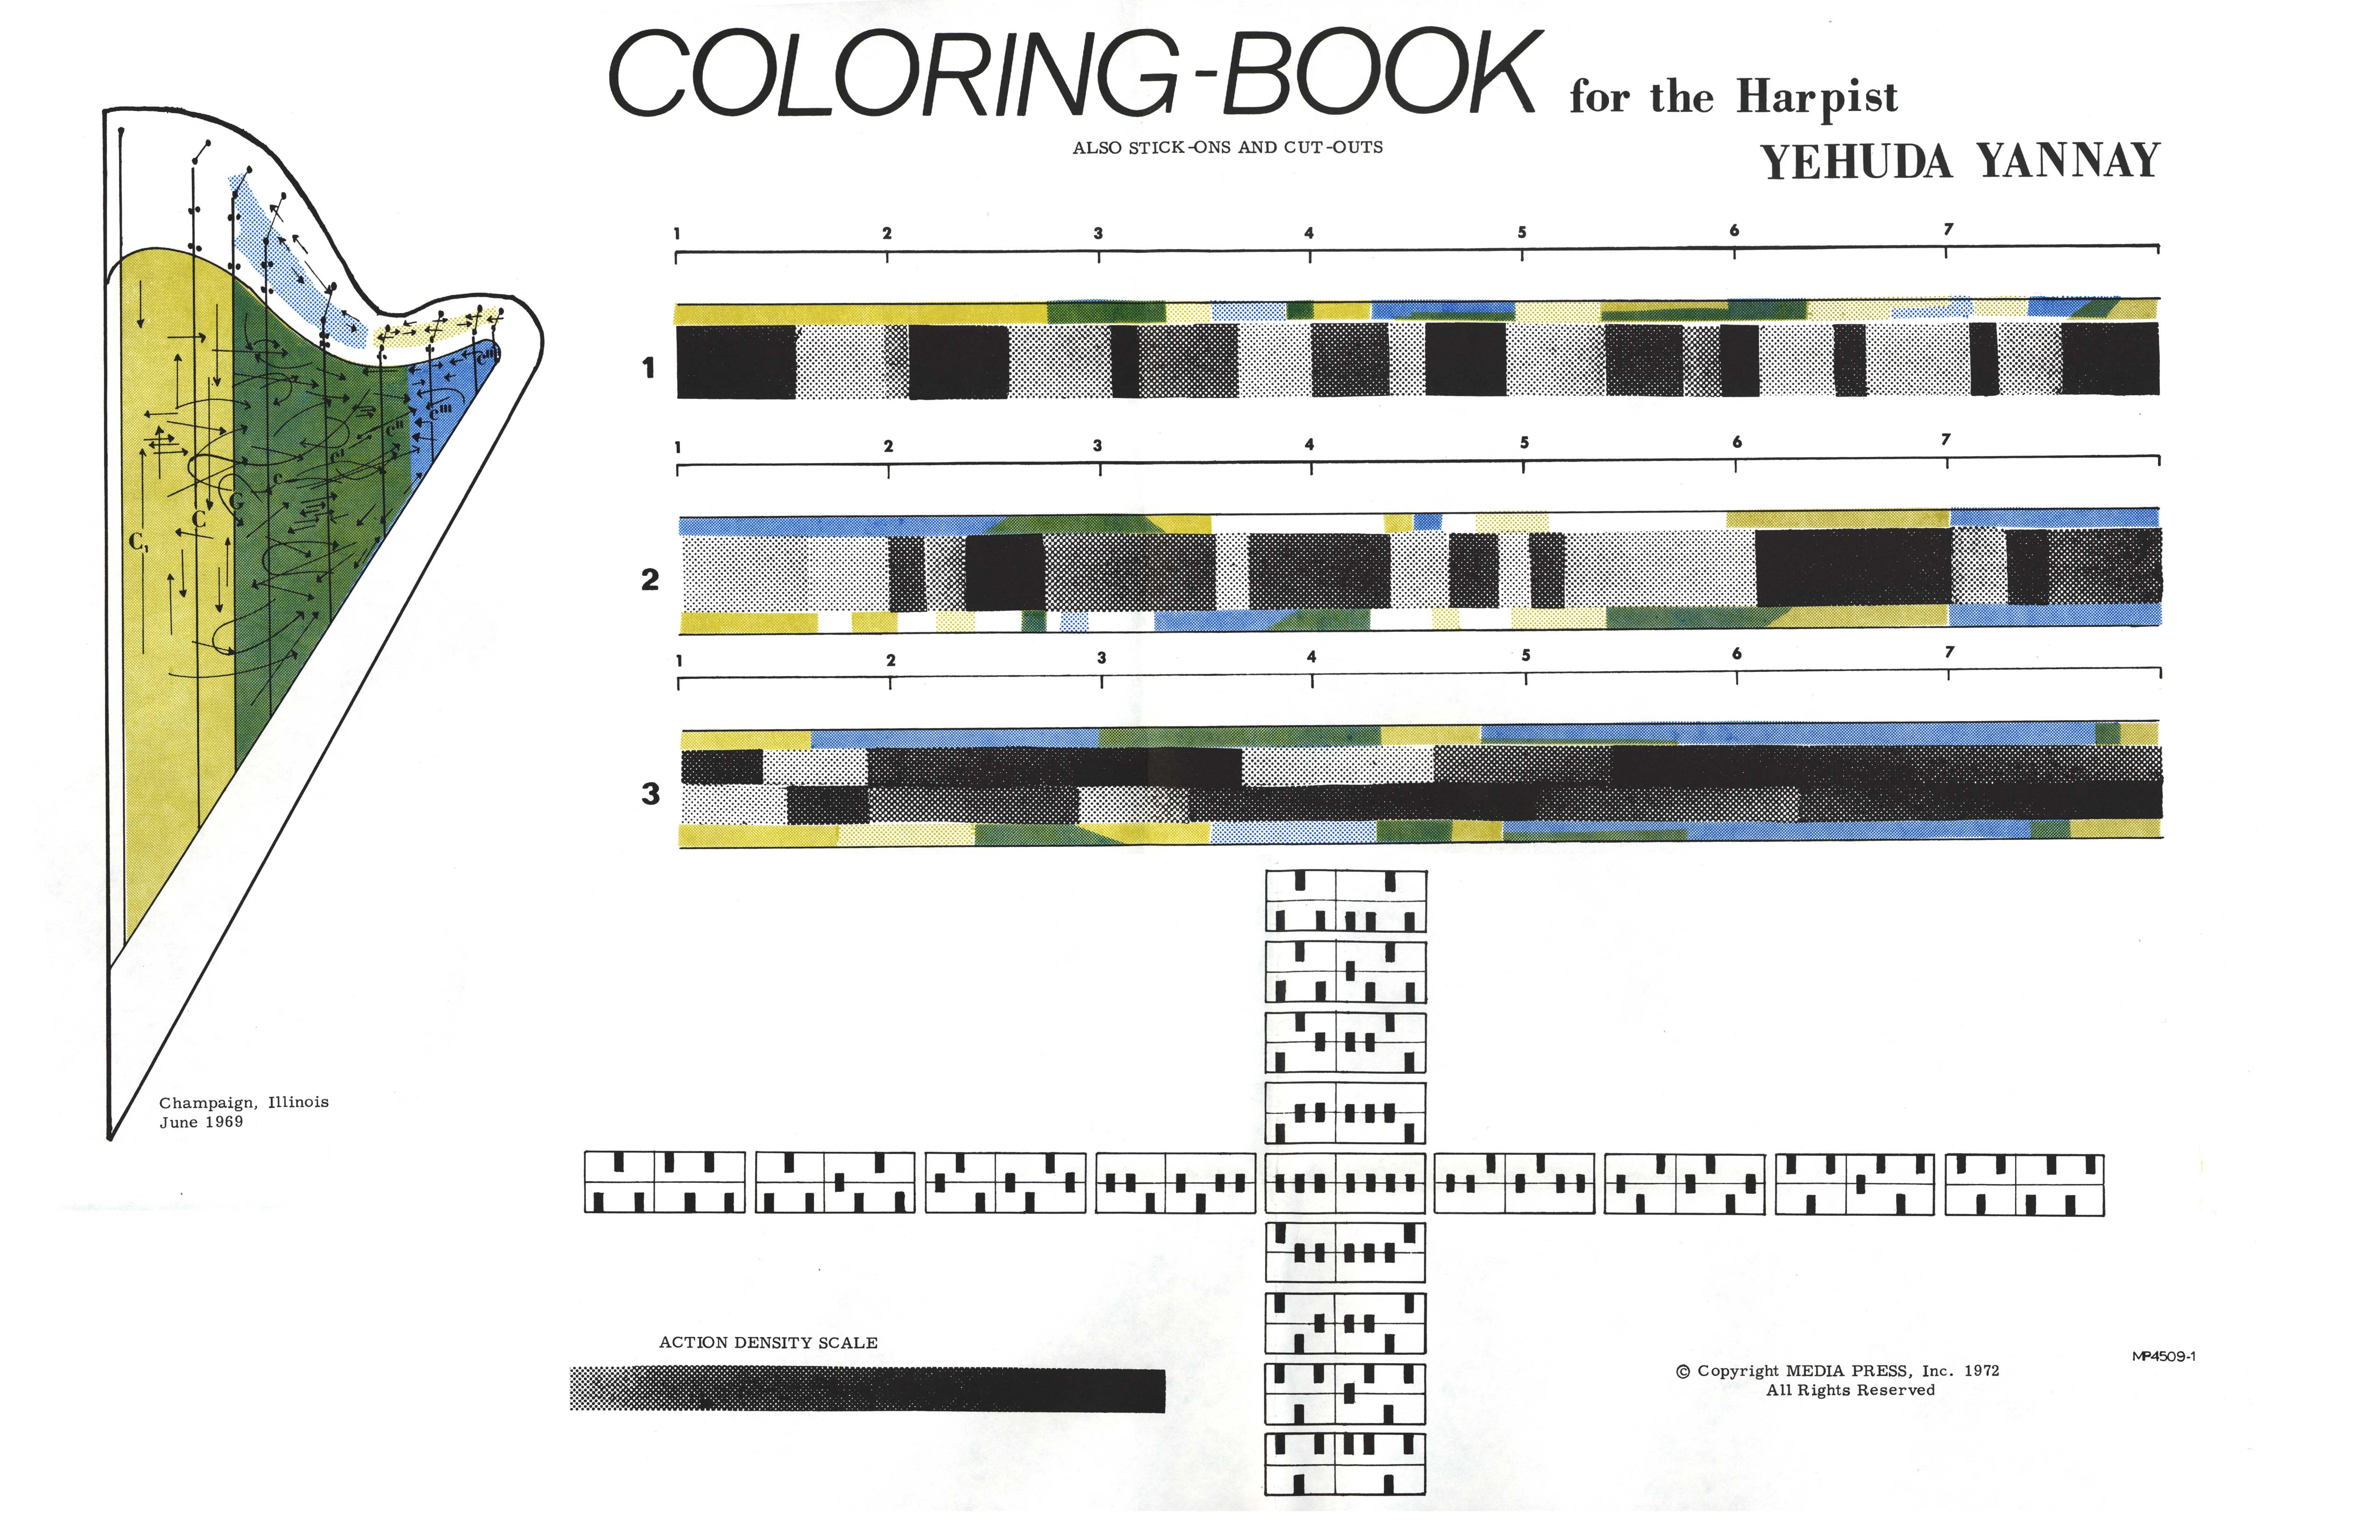 Coloring Book for the Harpist